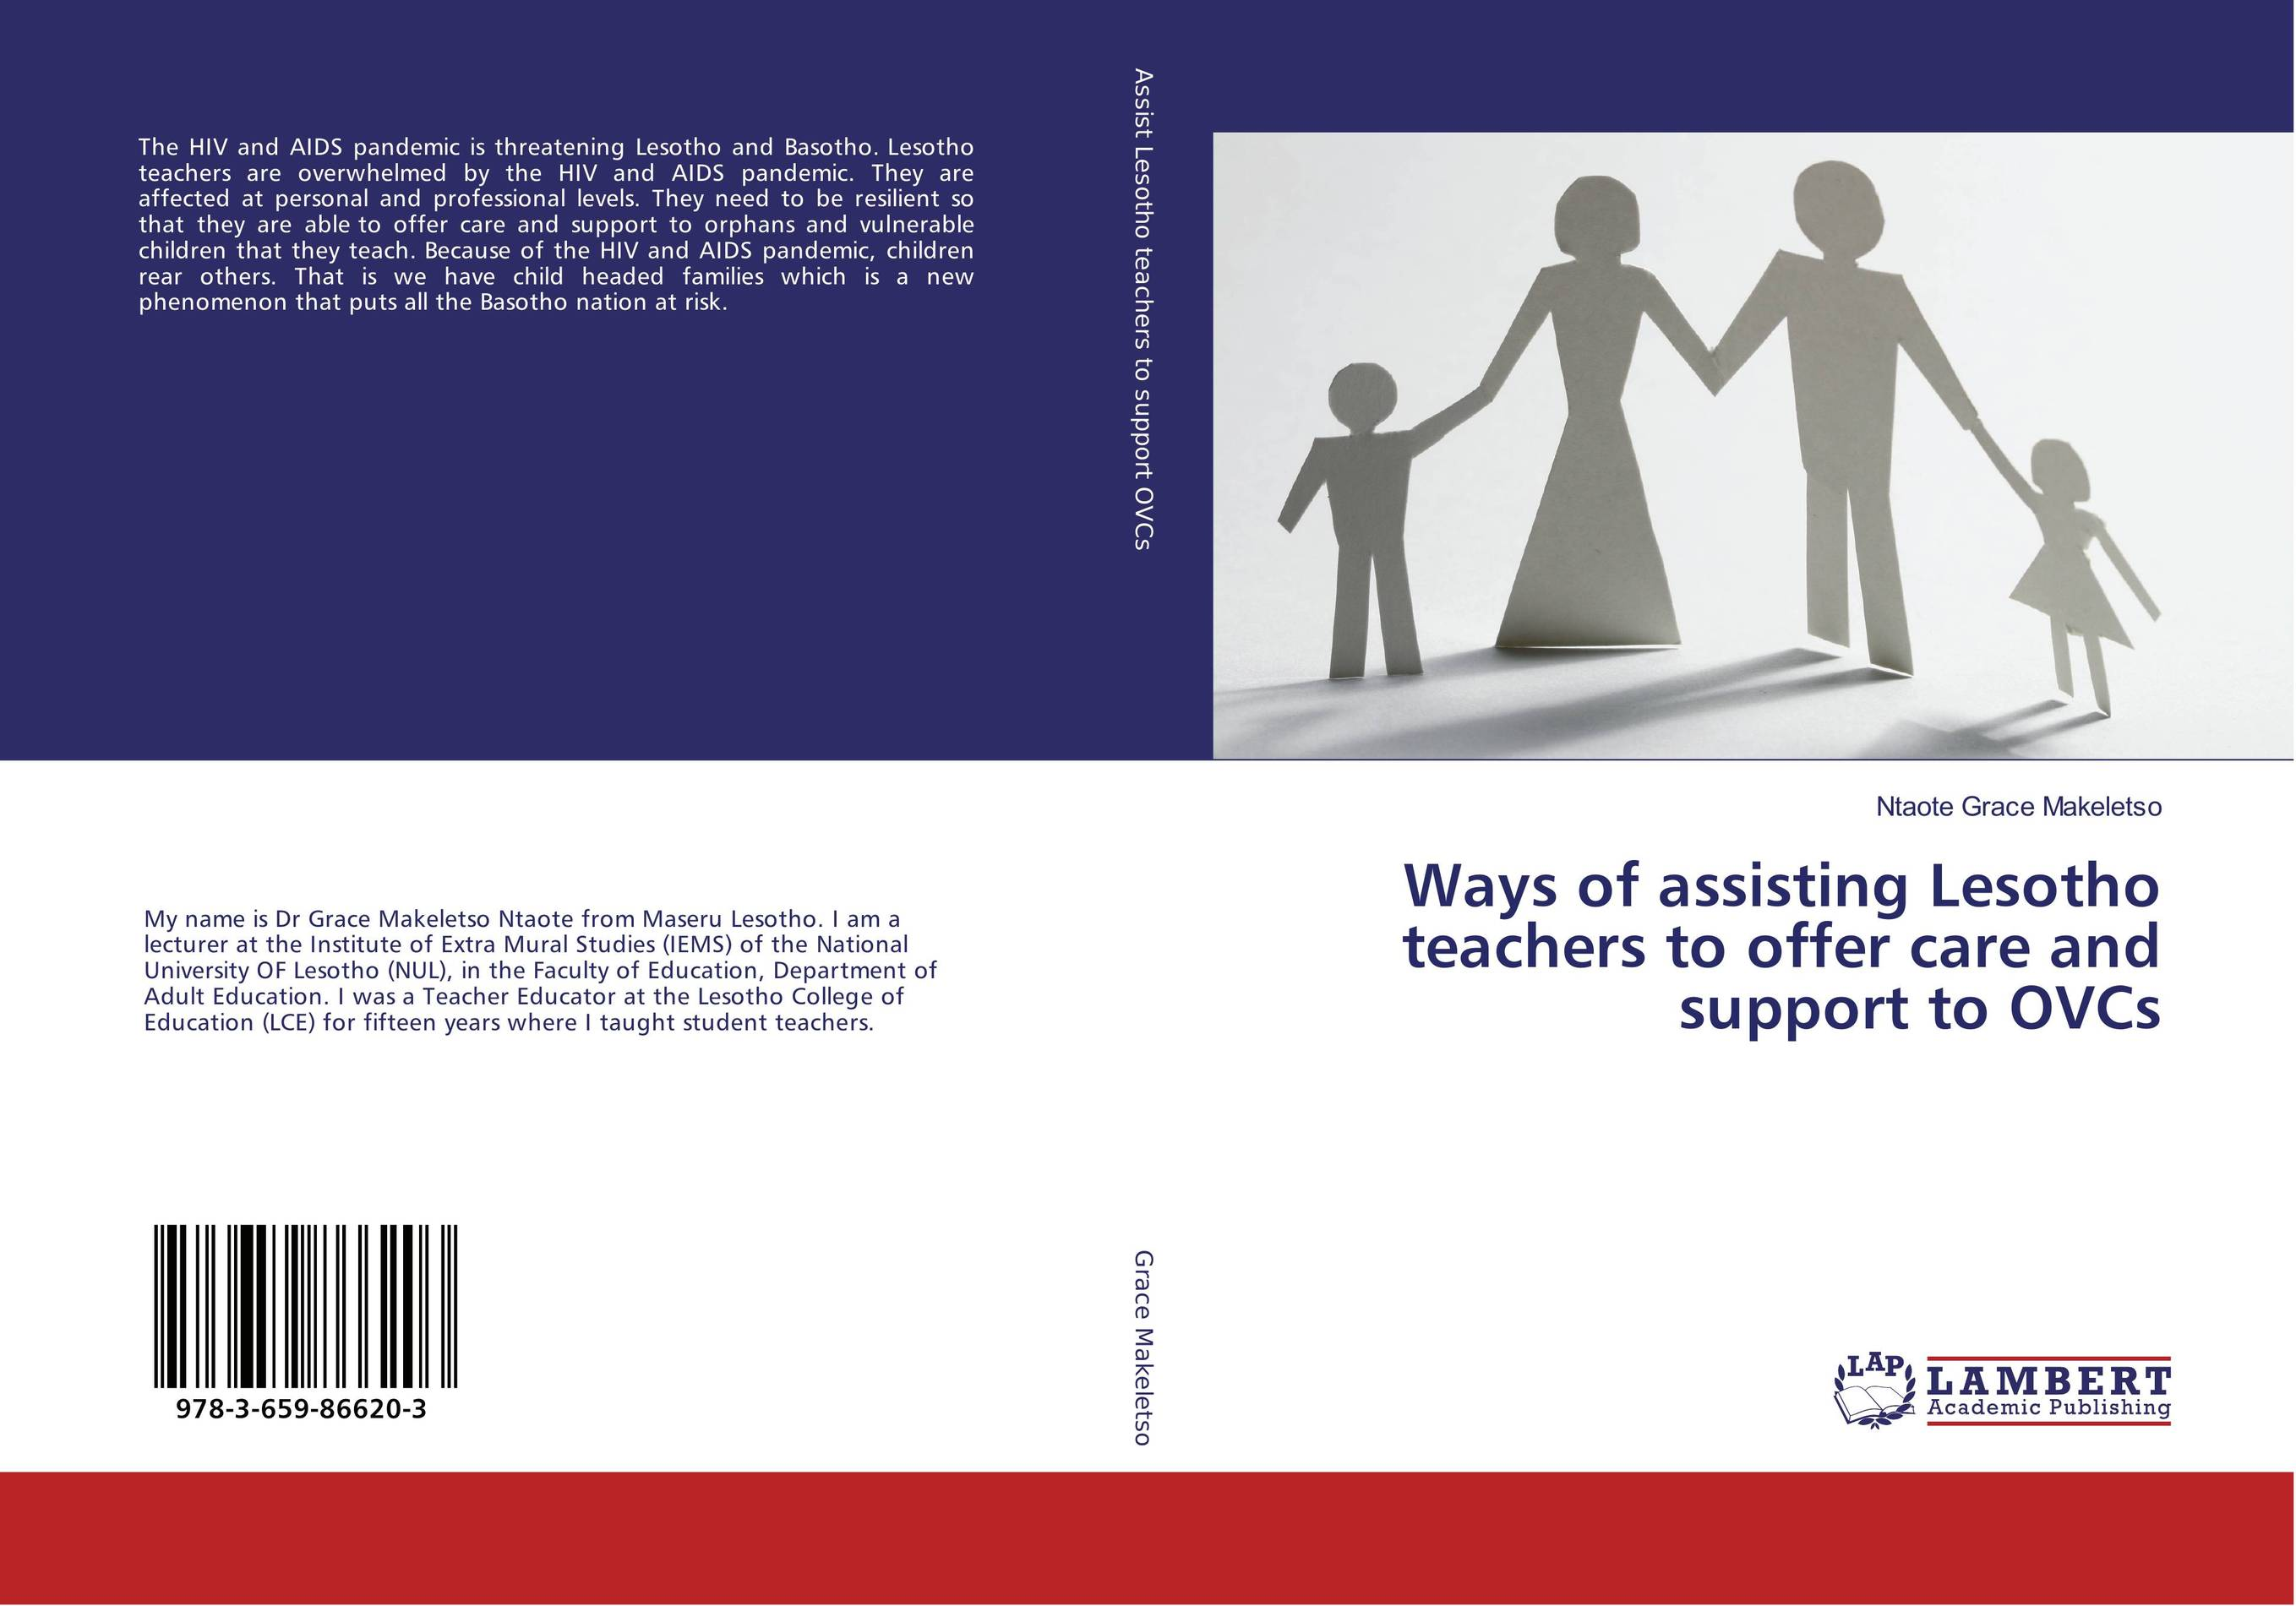 Ways of assisting Lesotho teachers to offer care and support to OVCs seeing things as they are